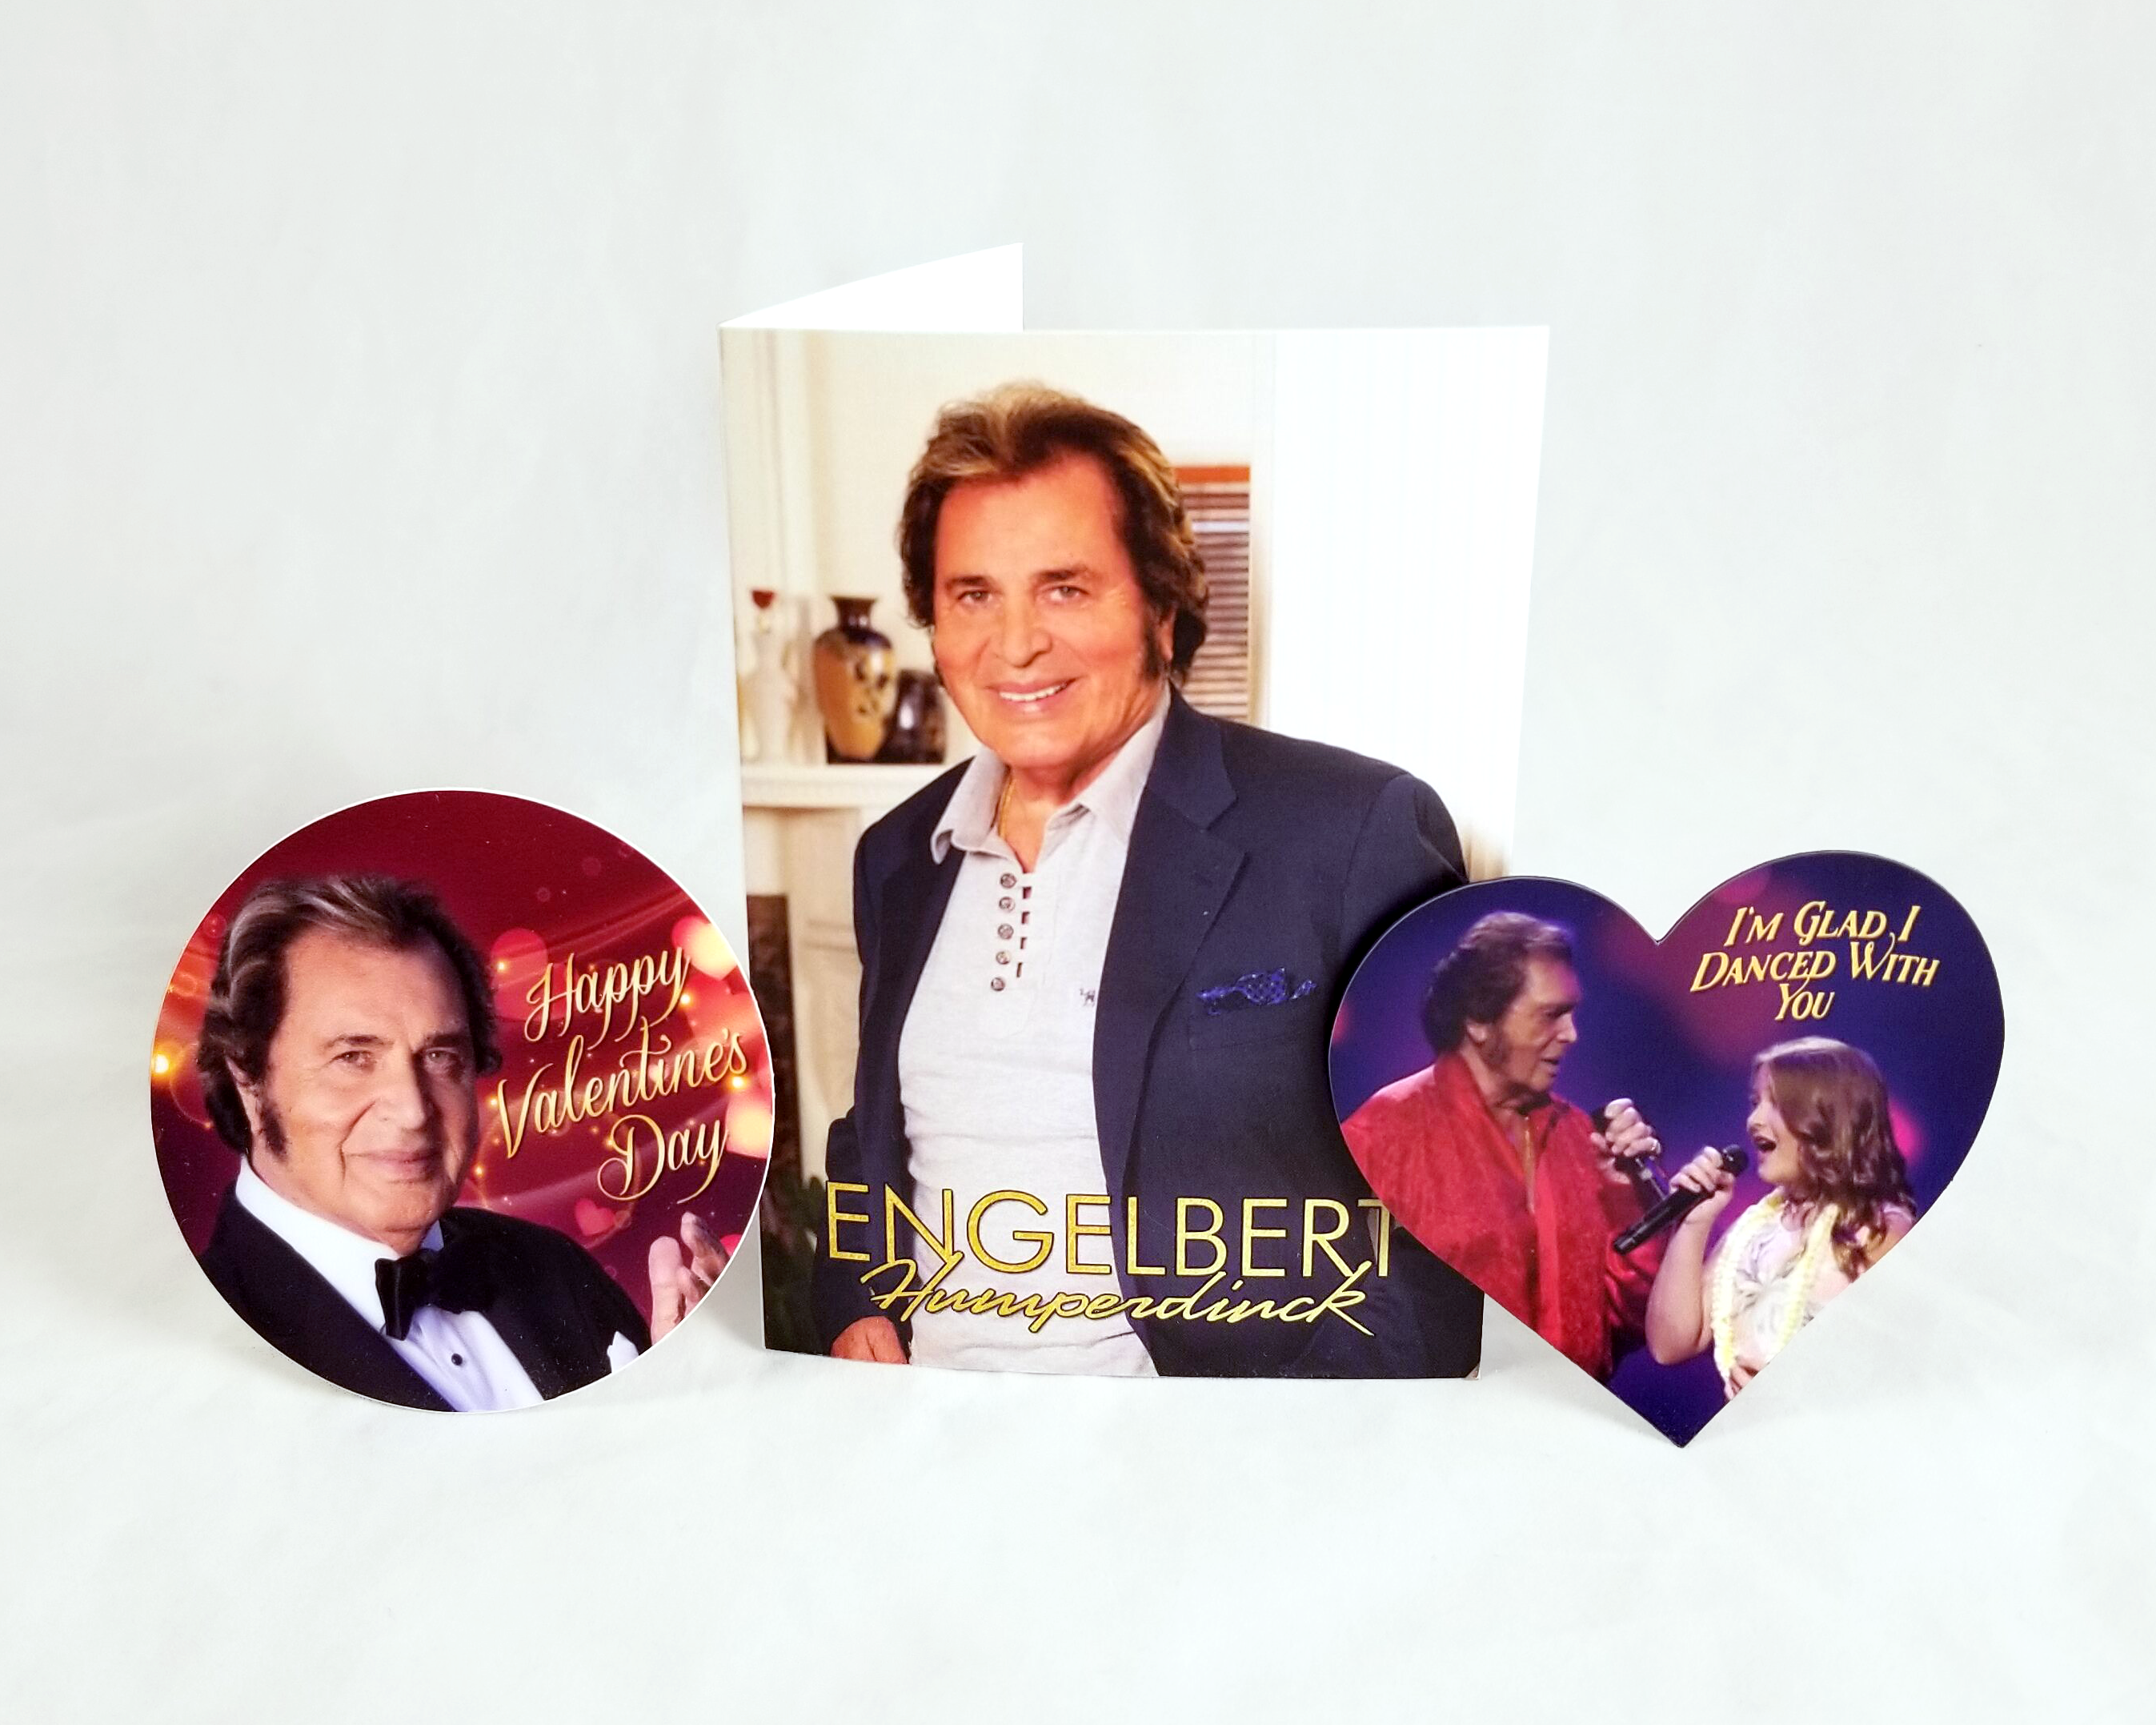 Engelbert Humperdinck Valentines Day Giveaway